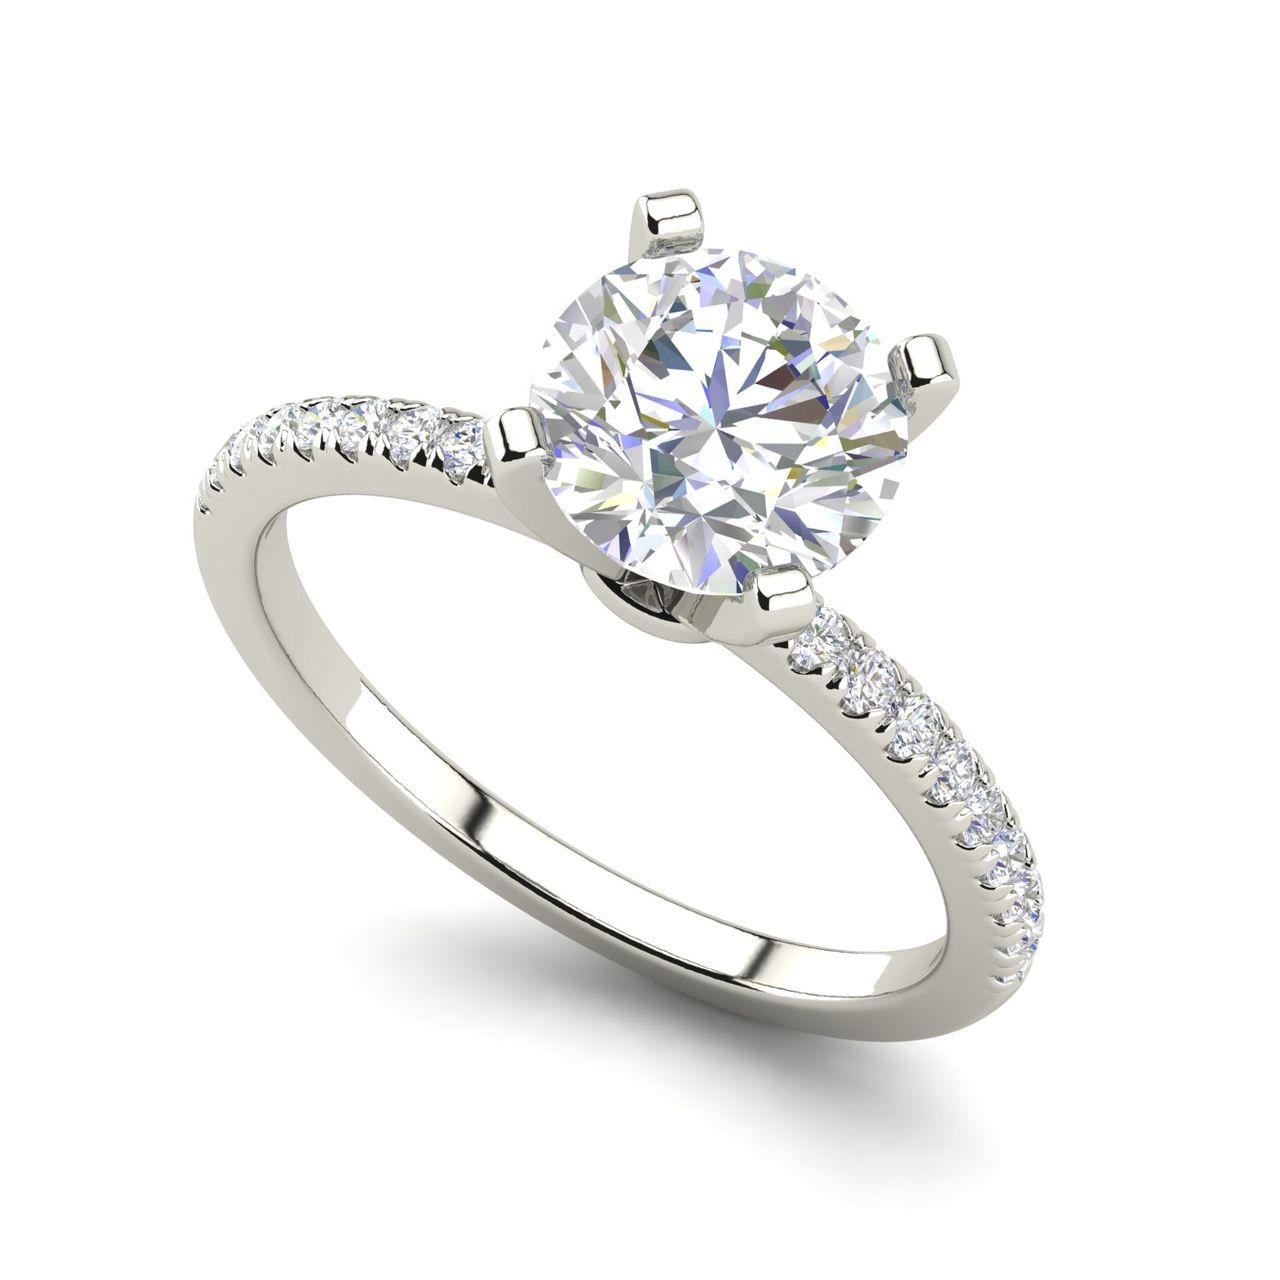 Micropave 1.25 Carat Round Cut Diamond Engagement Ring